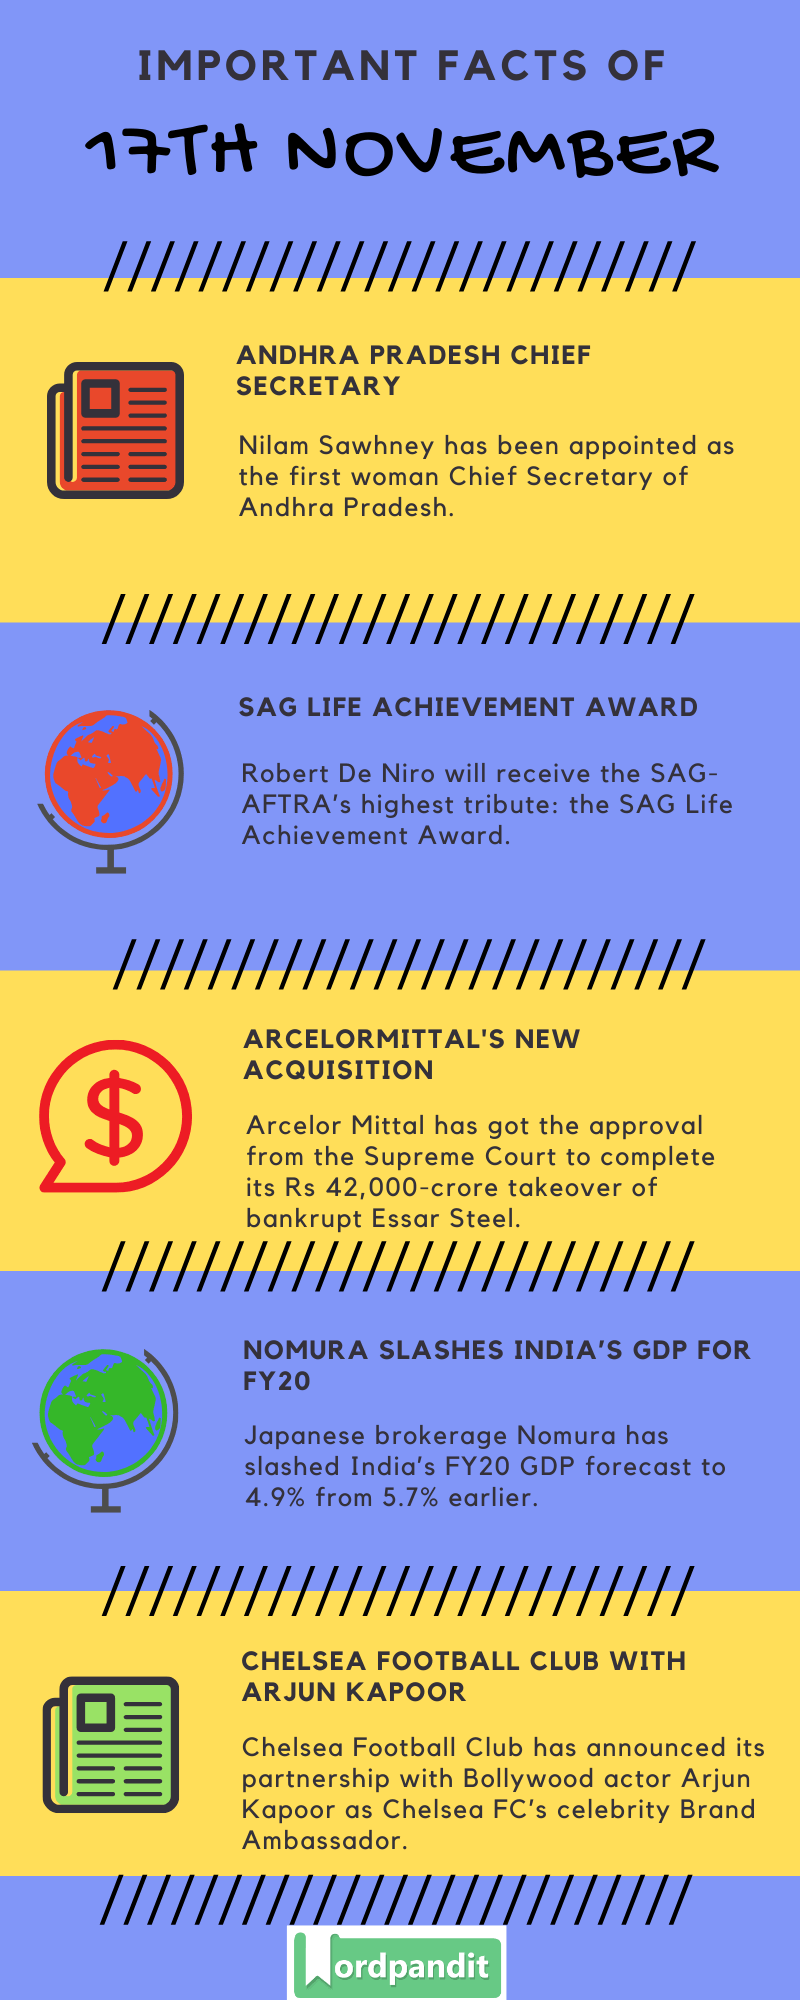 Daily Current Affairs 17 November 2019 Current Affairs Quiz 17 November 2019 Current Affairs Infographic